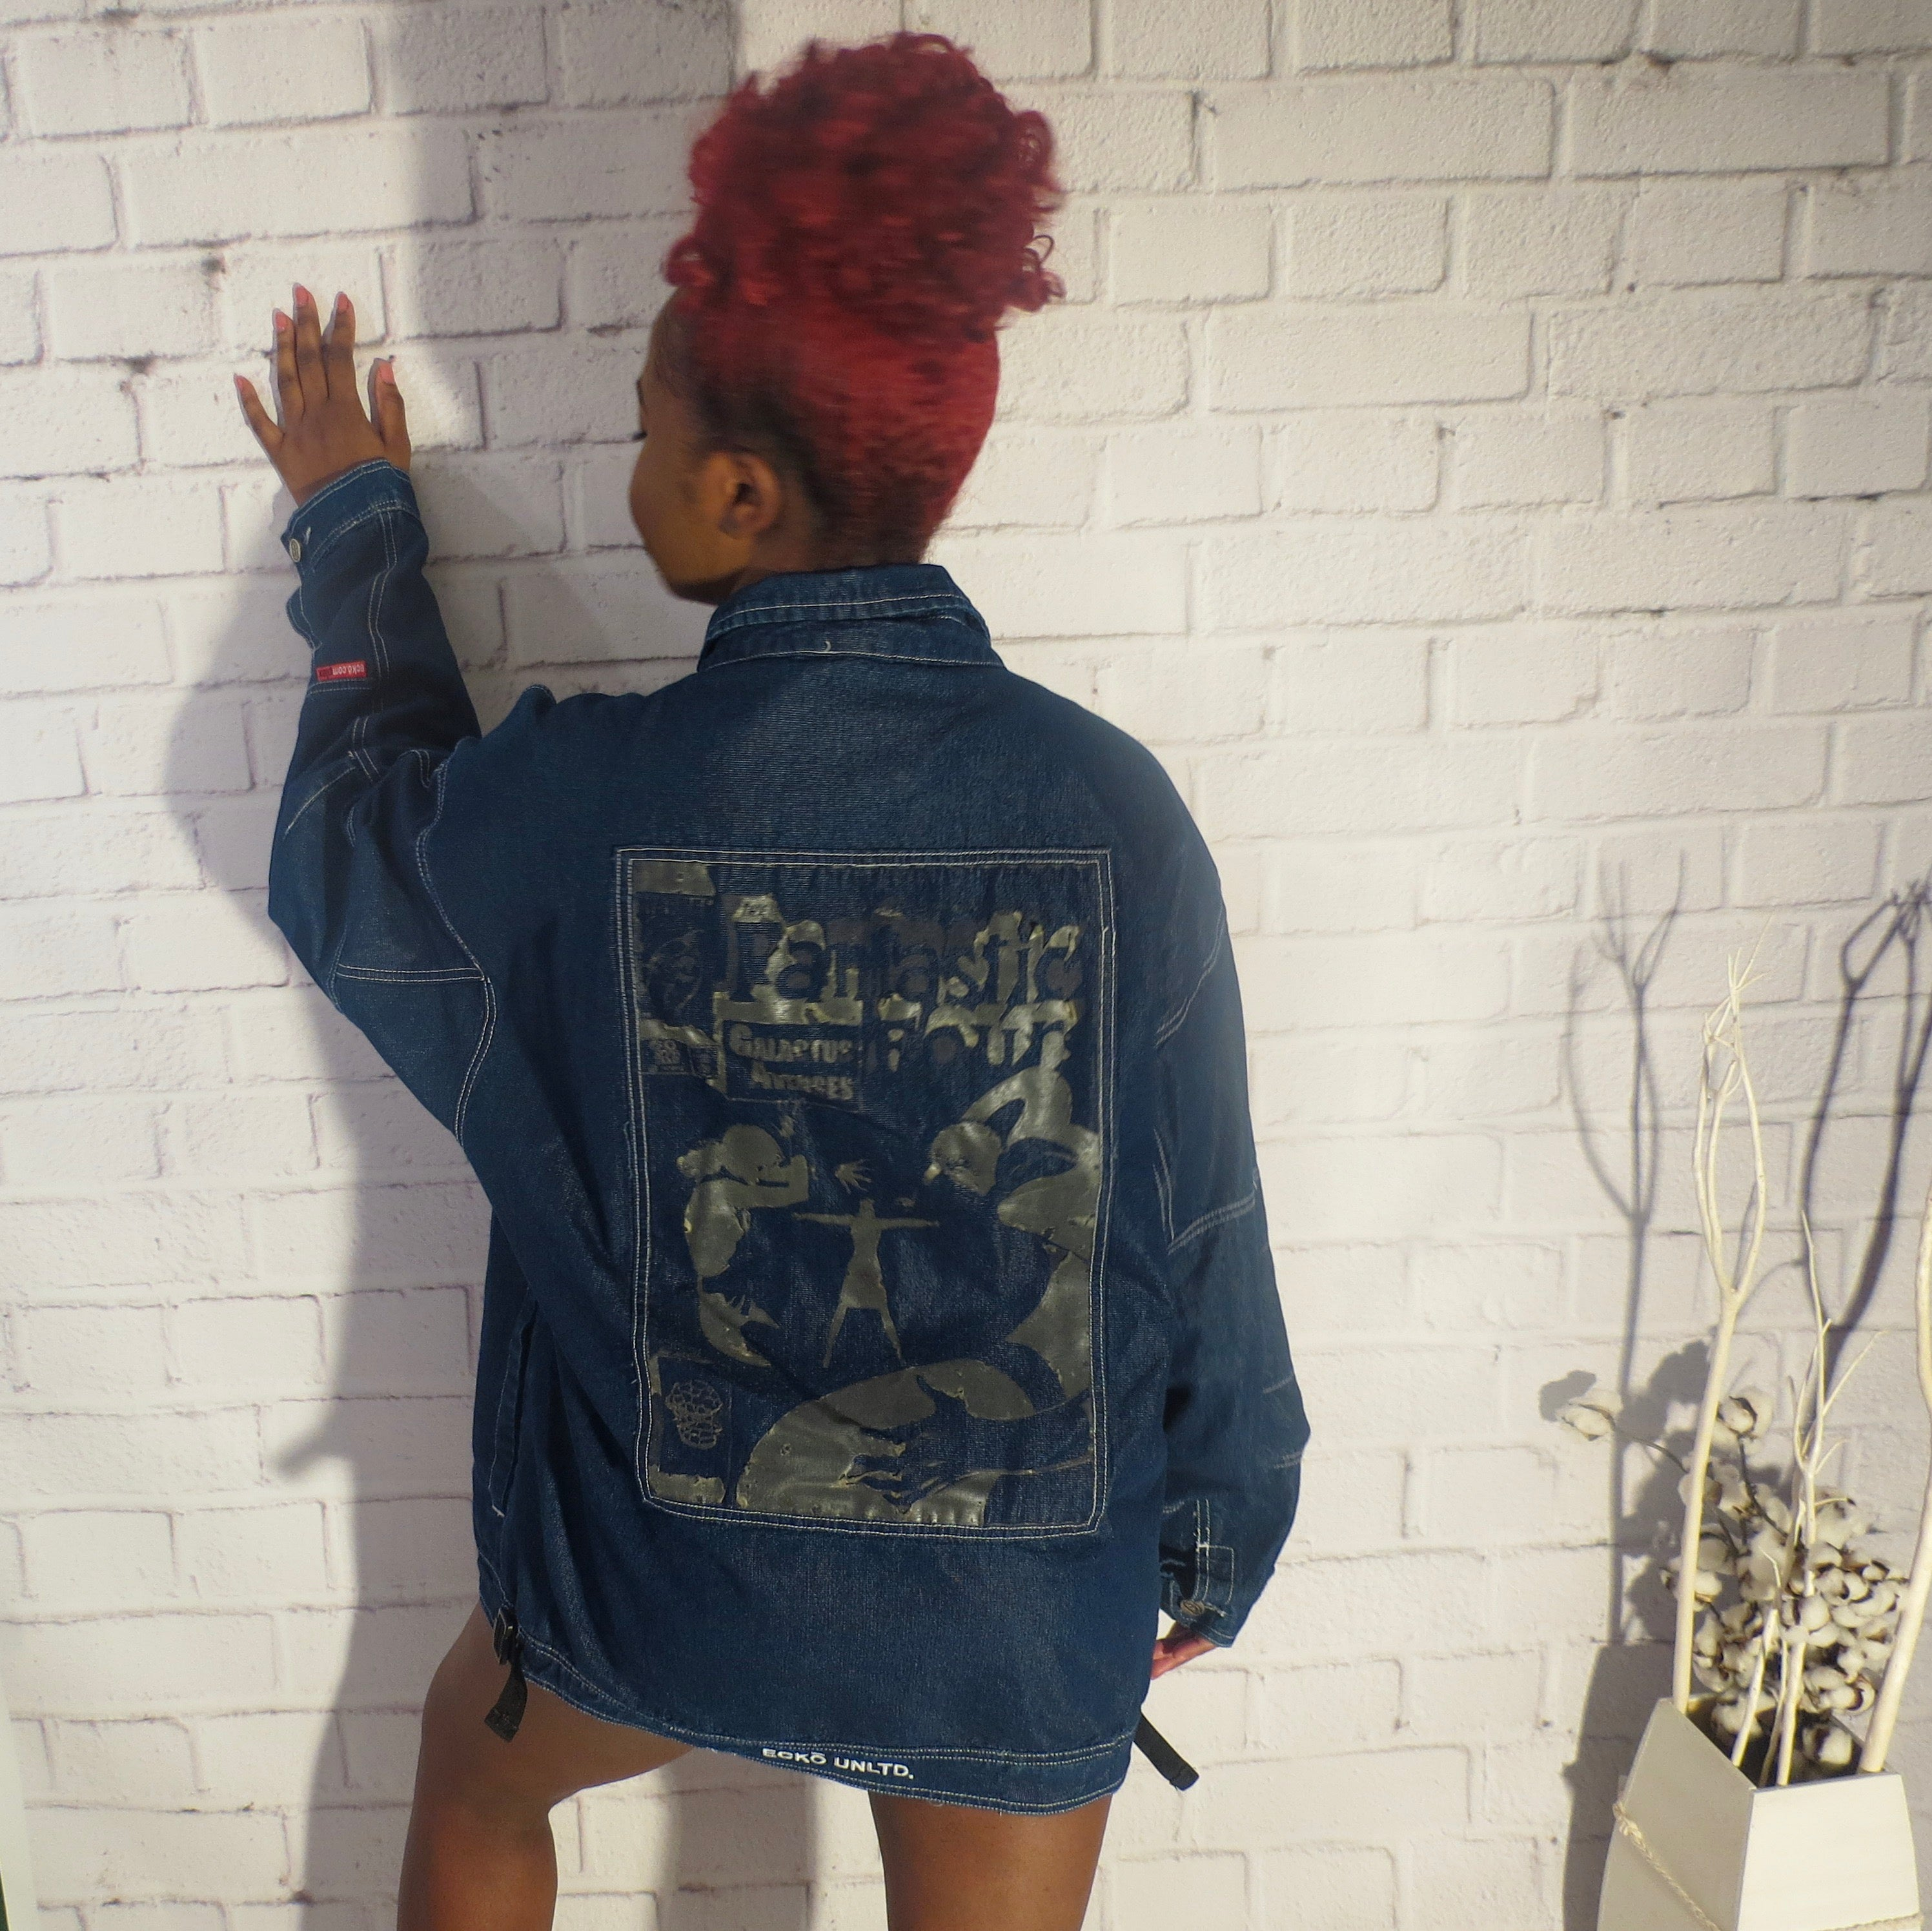 An Ecko'n Denim Jacket